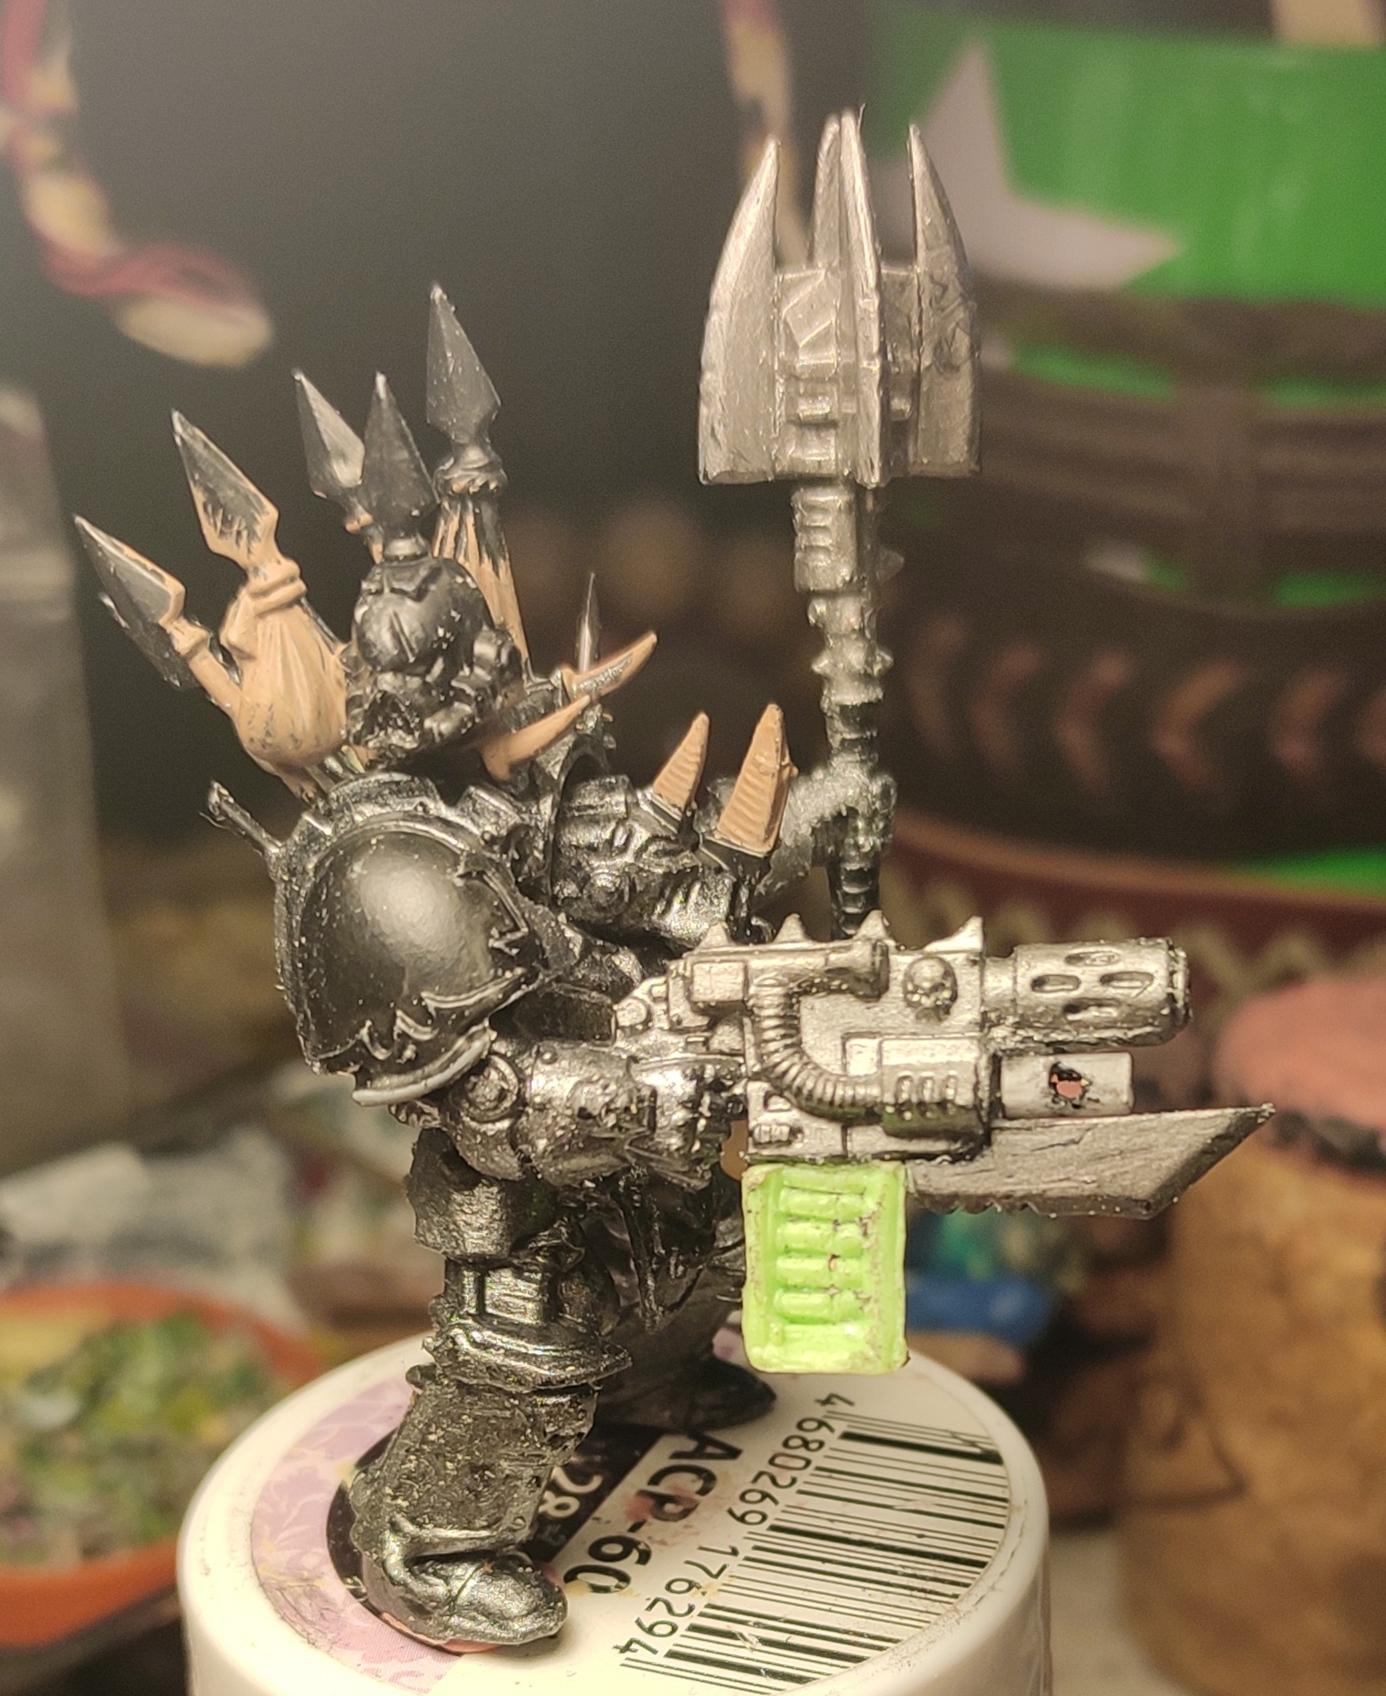 Chaos, Chaos Space Marines, Combiweapon, Conversion, Heretic Astartes, Iron Warriors, Iron Within, Iron Without!, Kitbash, Power Maul, Terminator Armor, Trophy, Warhammer 40,000, Work In Progress